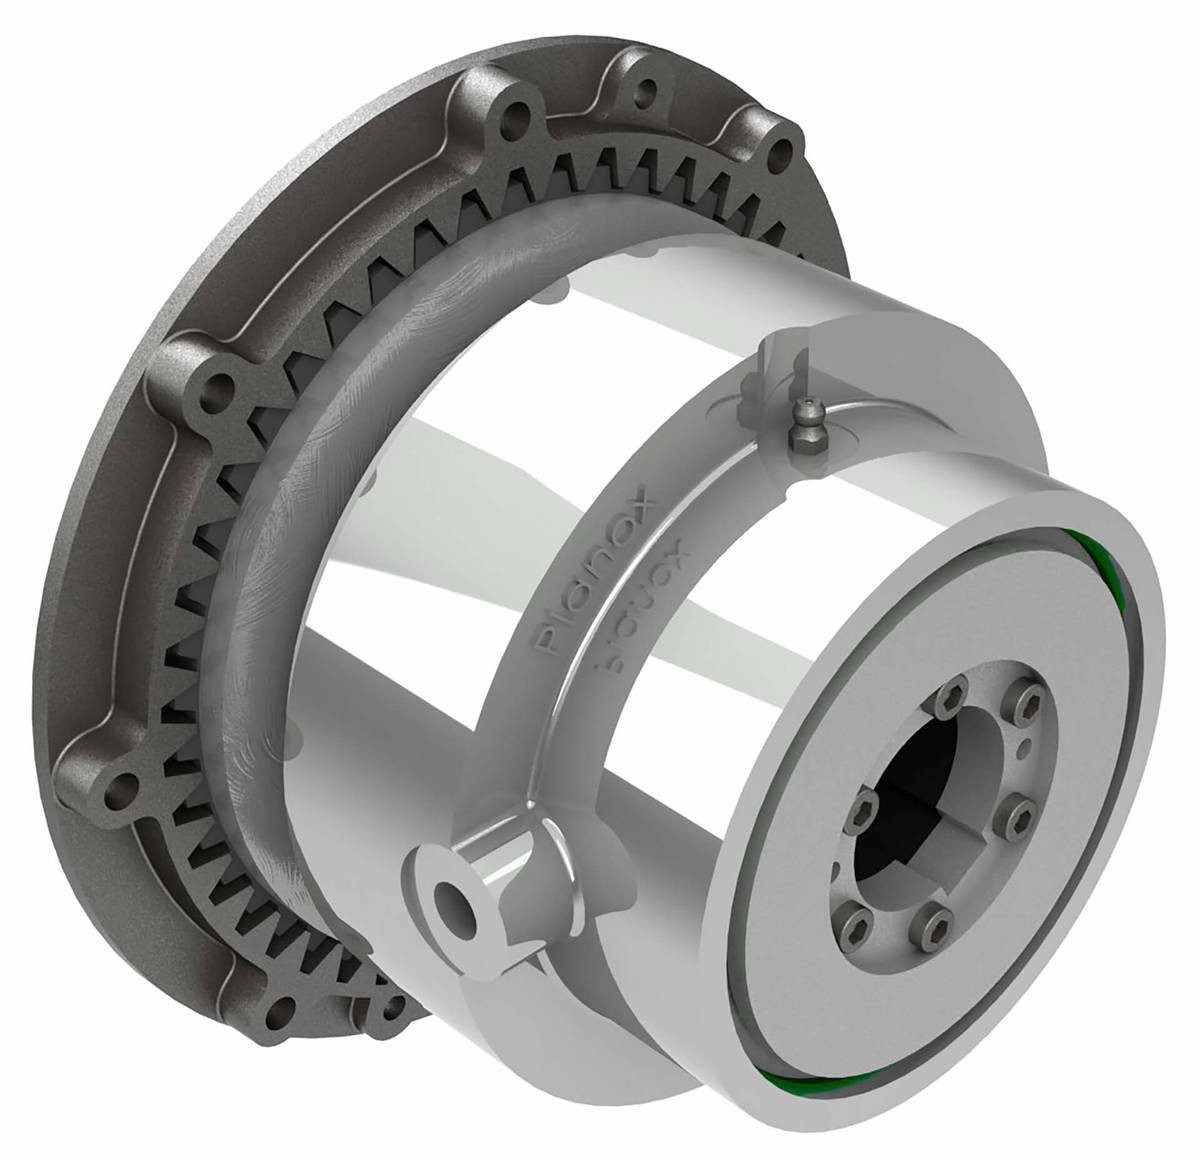 Desch Planox® PPRT switched off pneumatically  Multi Plate Friction Clutch Image